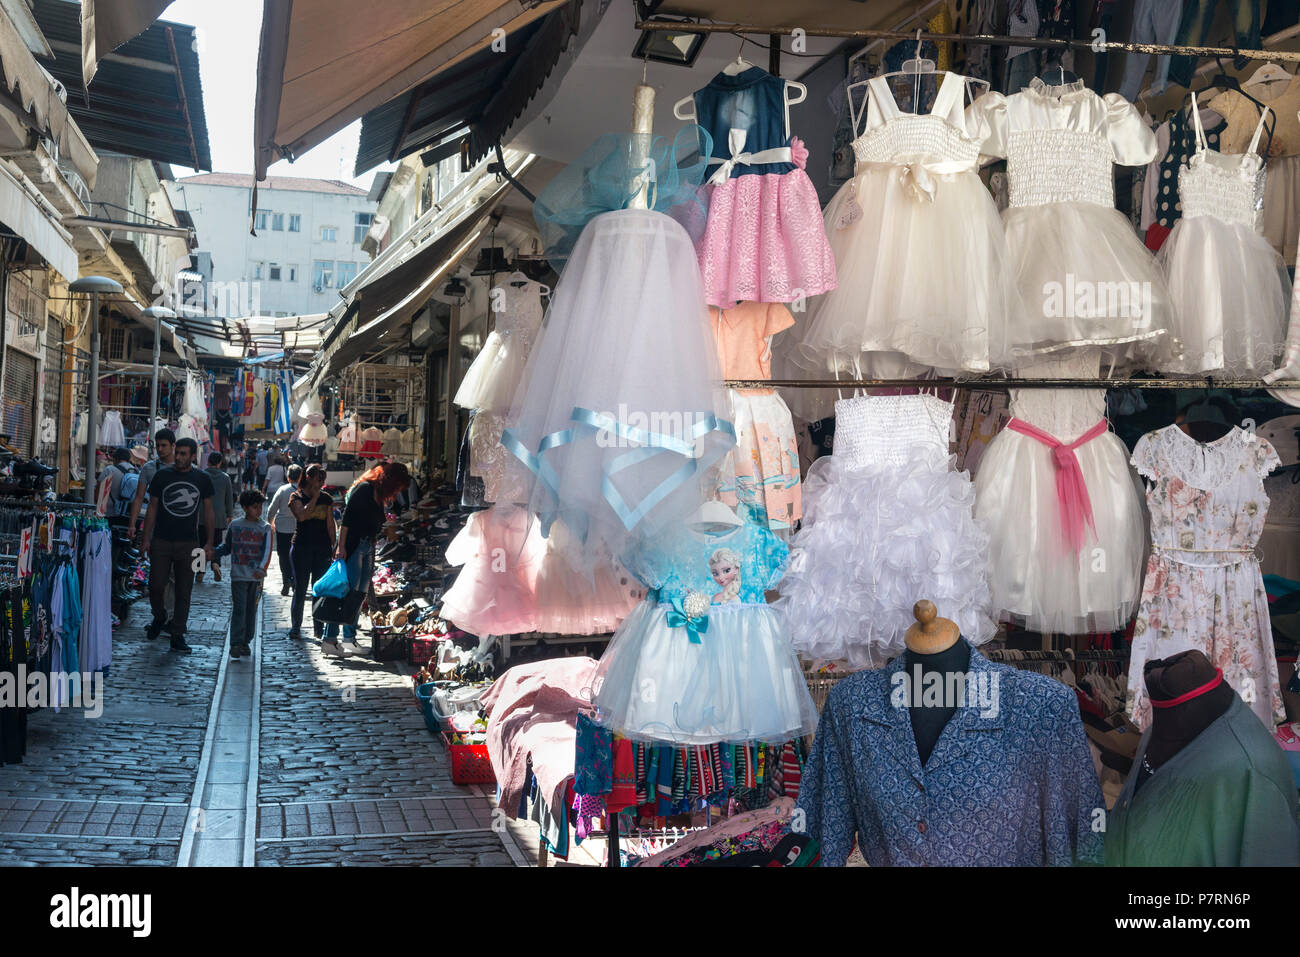 Christening dresses for sale in the Modiano Market, Thessaloniki Macedonia, Northern Greece - Stock Image